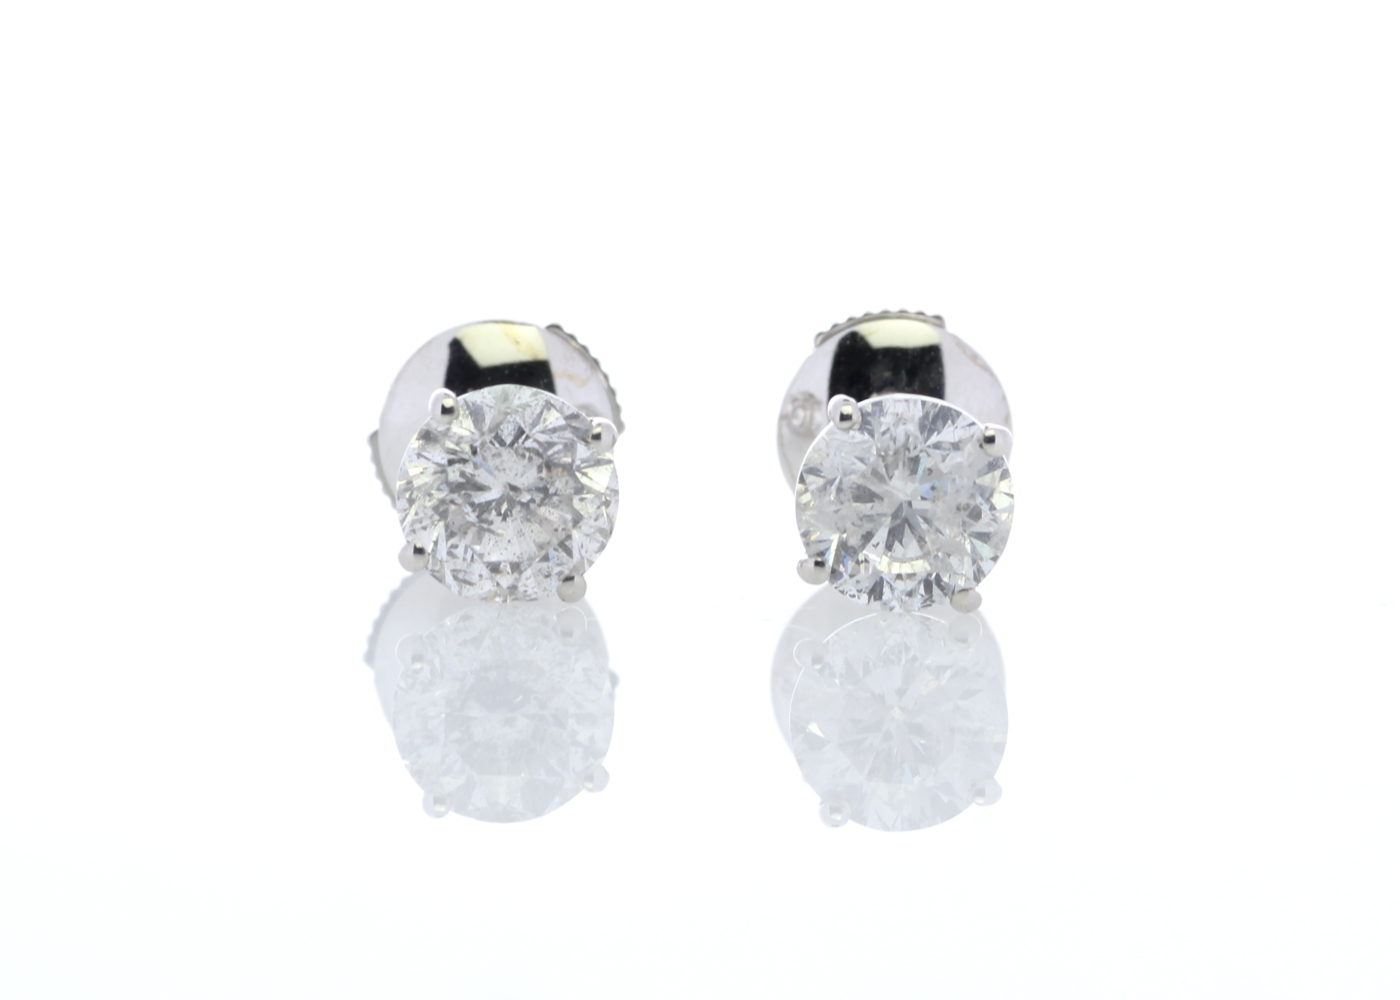 18ct White Gold Claw Set Diamond Earrings 2.21 Carats